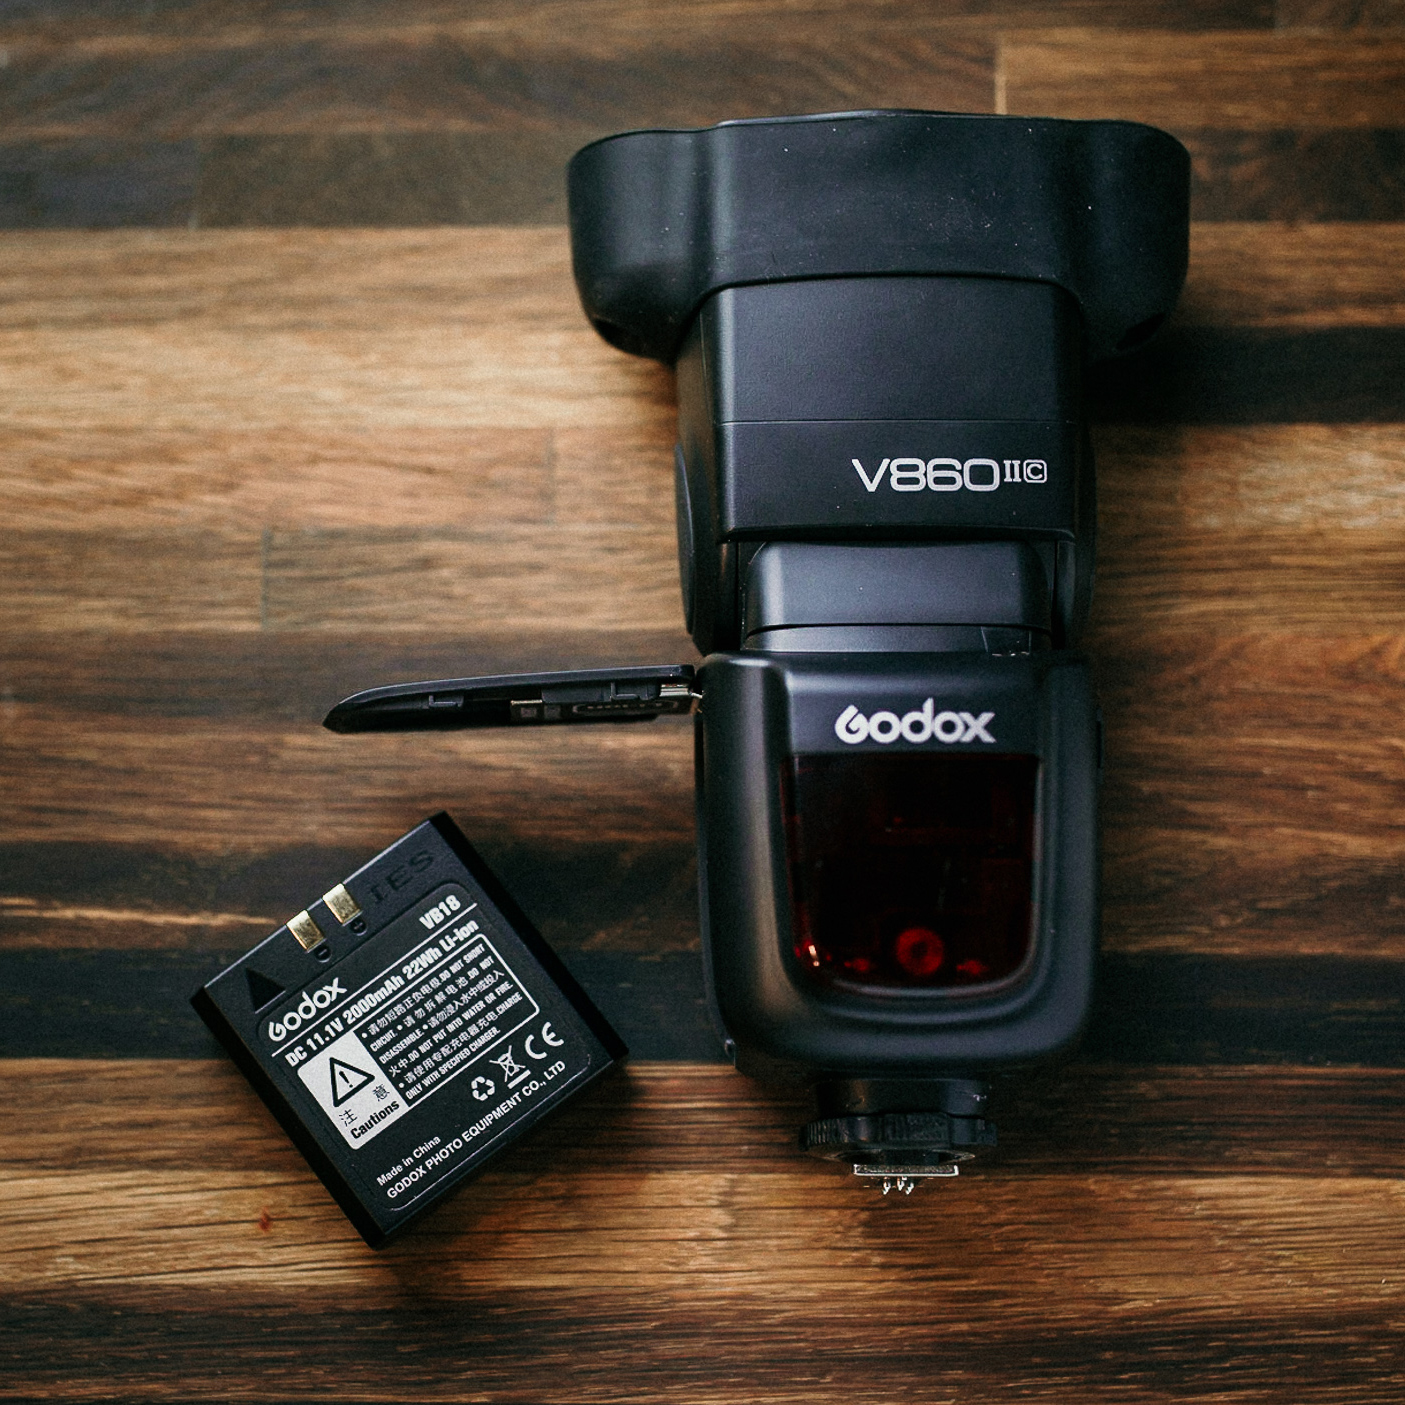 Godox V860 II - Every photographer needs a speedlight. The Godox V860 II comes in most camera mounts and has some specific advantages over other flashes on the market:> Li-Ion battery lasts significantly longer than AA's. Only worry about charging one battery vs four!> Built-in transceiver allows you to control other Godox/Flashpoint units while using on-camera, even the larger AD200 and AD600.Flashpoint Equivalent: Flashpoint Zoom Li-ion R2 TTL